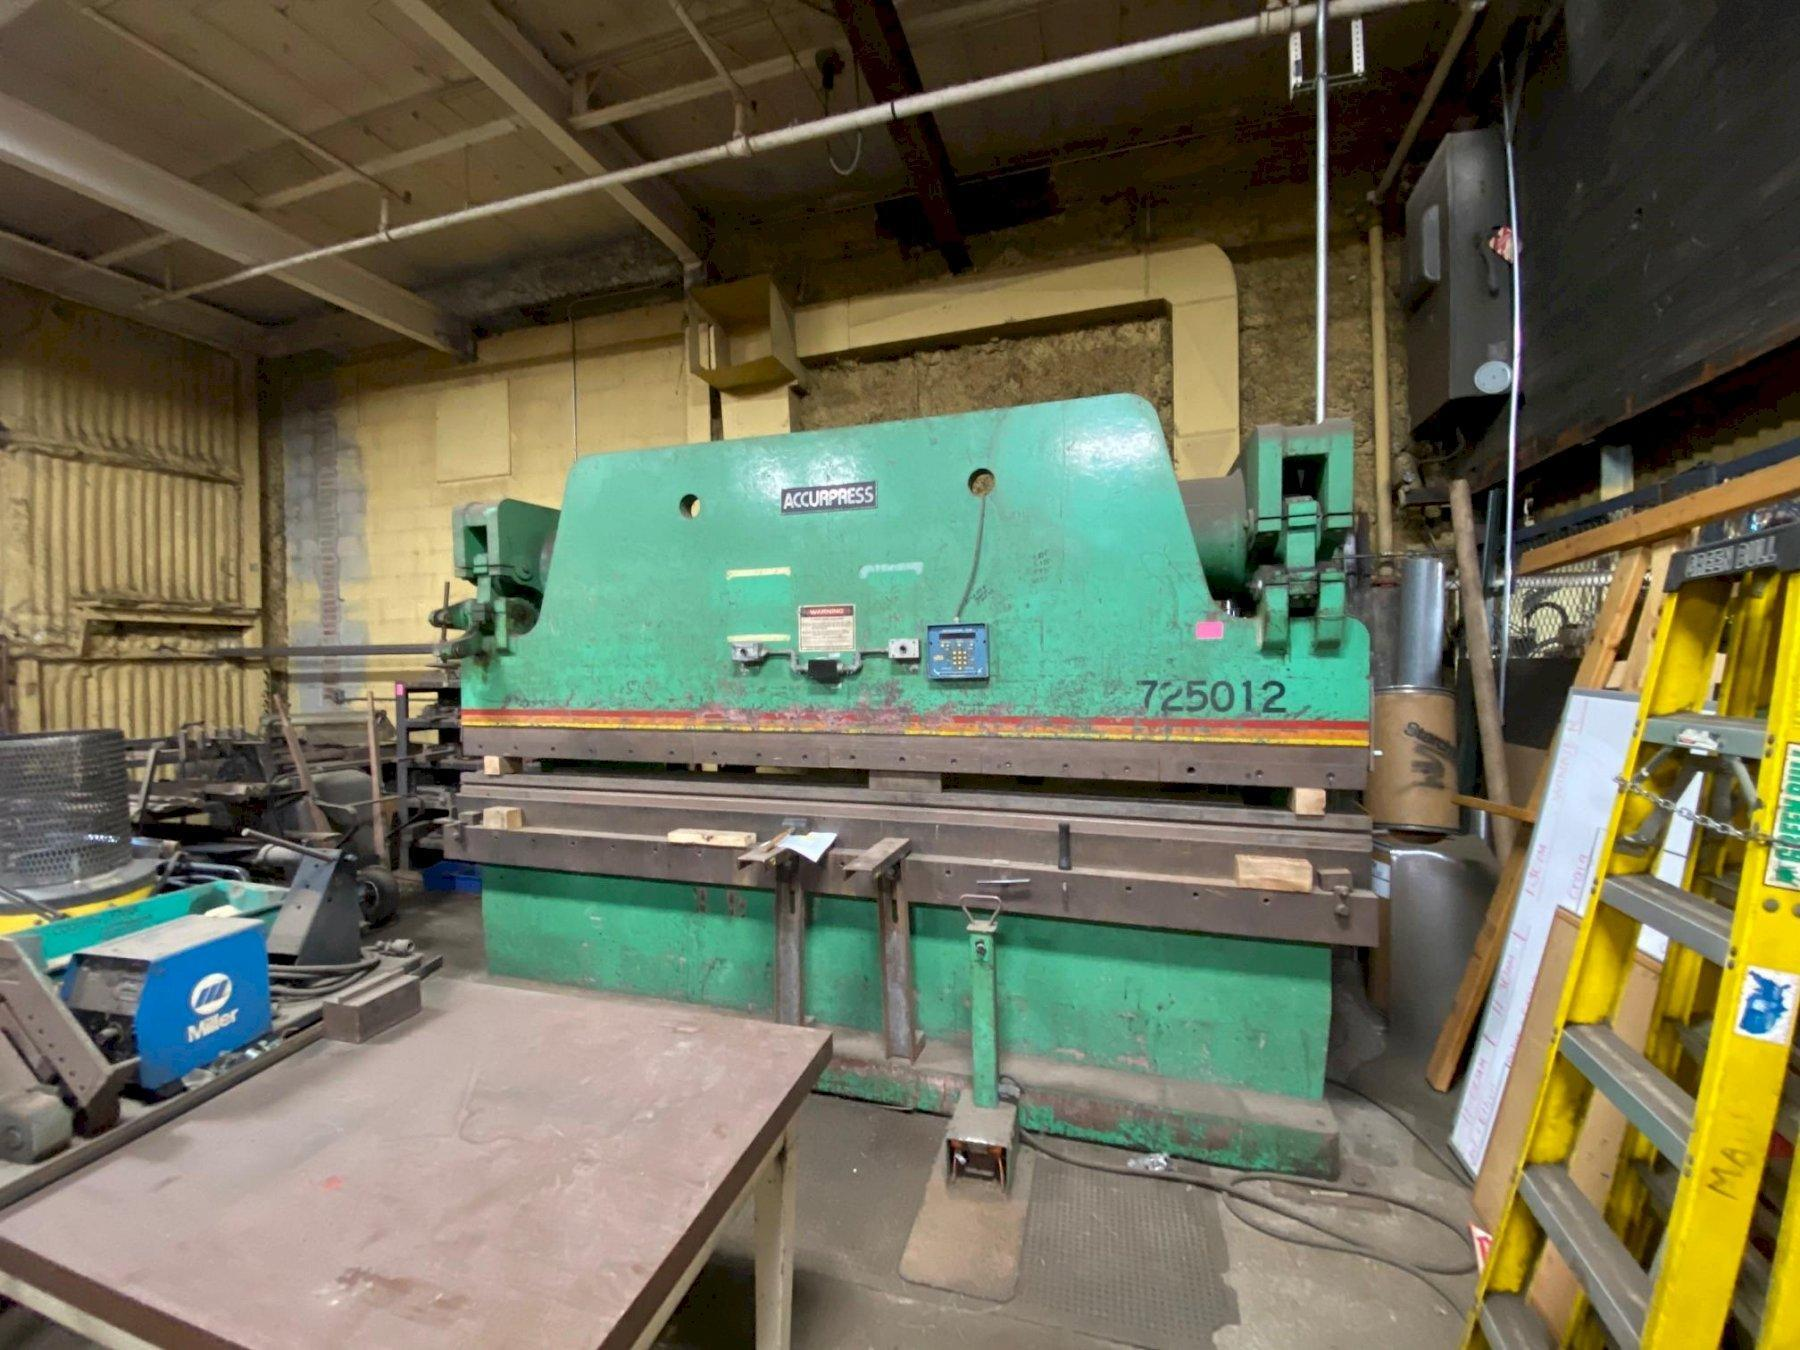 250 TON x 12' ACCURPRESS MODEL #725012 HYDRAULIC PRESS BRAKE WITH AUTOMEC CNC BACK GAUGE: STOCK #13182